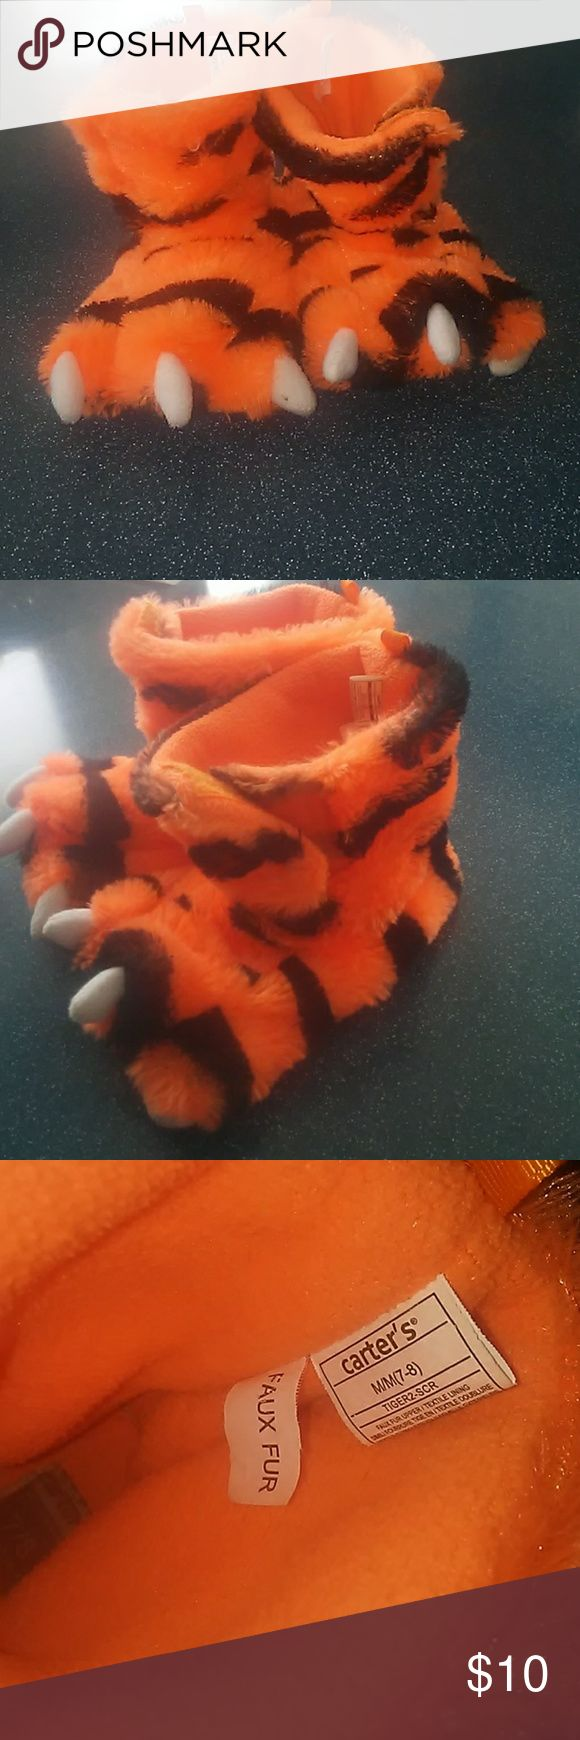 Carter's Toddler Tiger Stripe Slippers Carter's Toddler size 7/8 (Medium) tiger stripe slippers. Faux fur. Fun slippers my son loved playing around in. These have been worn, many many times. In good shape but by no means perfect condition- definitely used. I hope someone else can love them as much as we have! Carter's Shoes Slippers